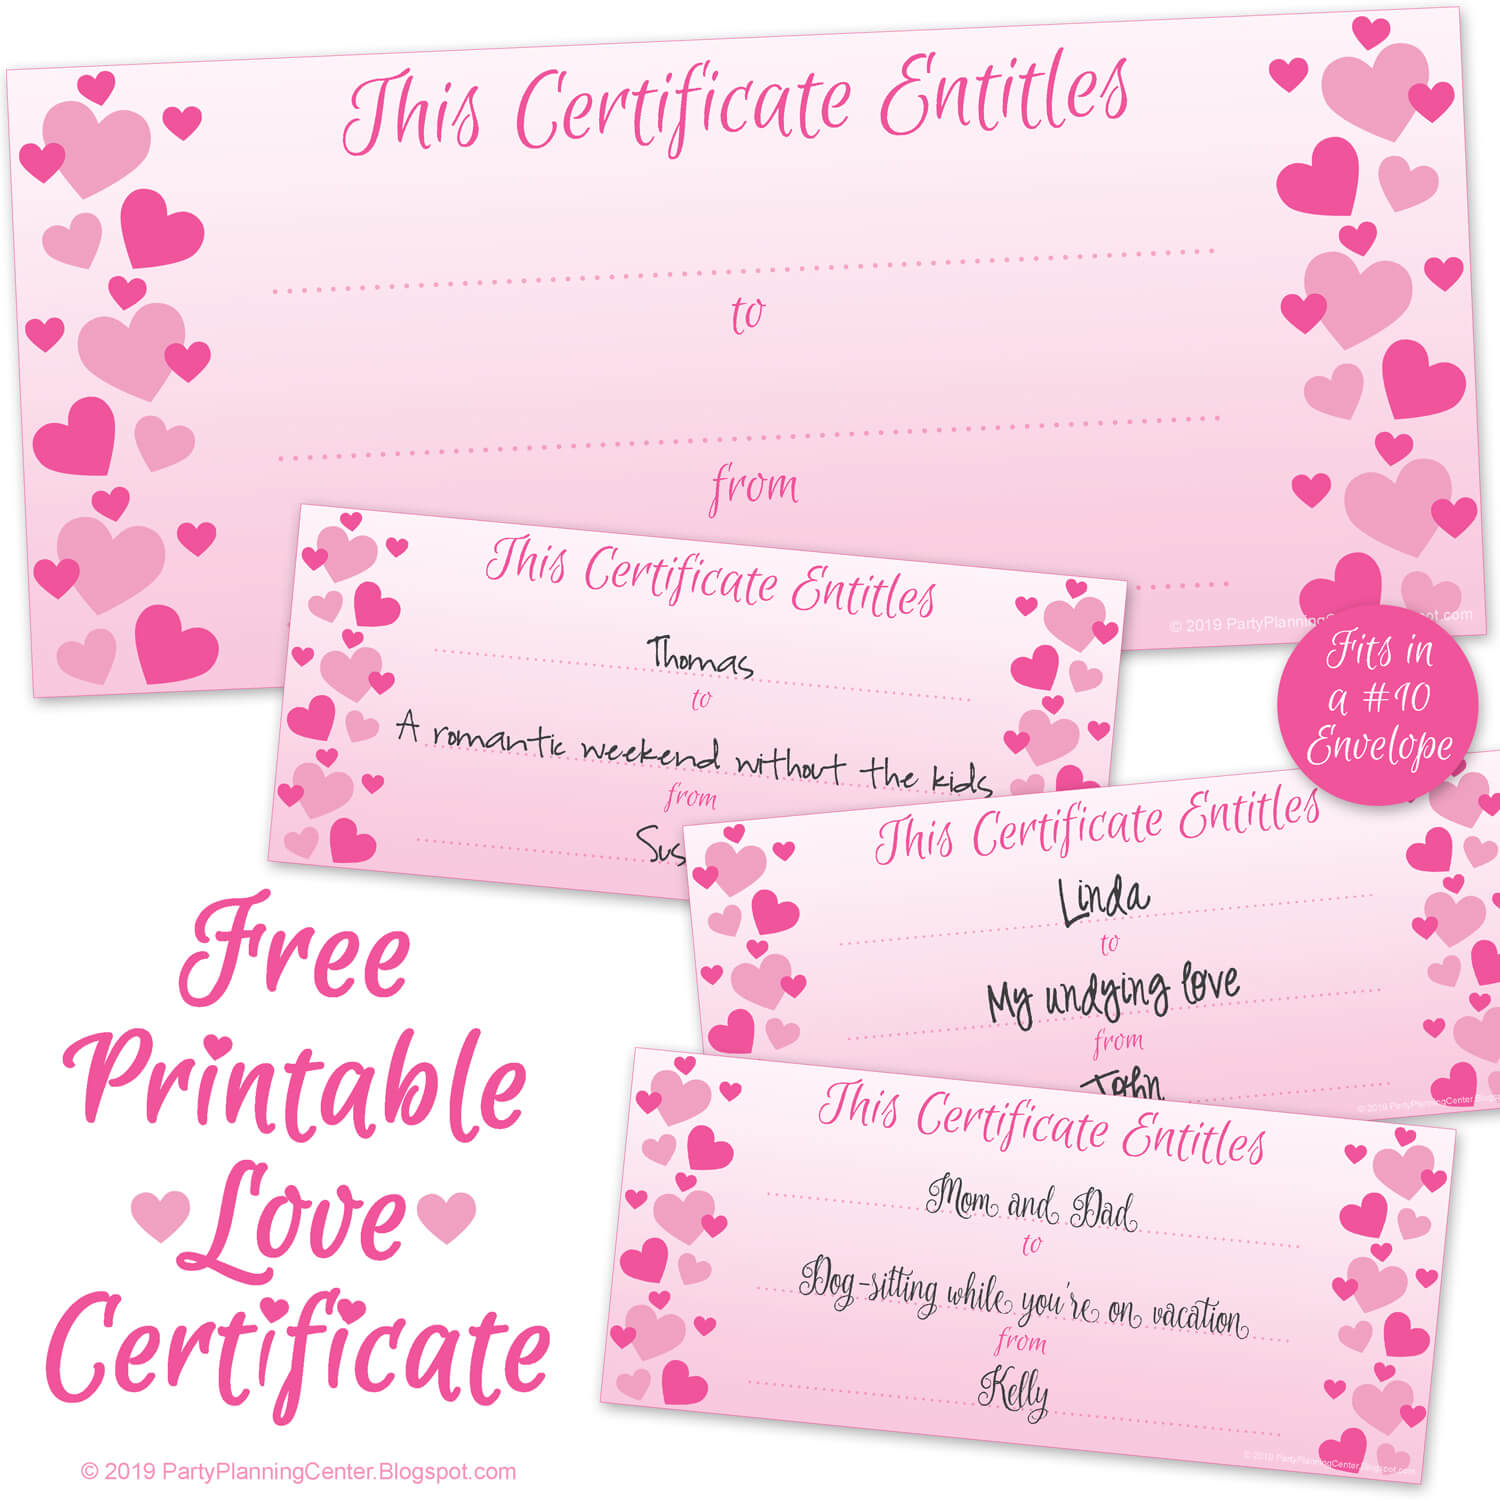 Can't Find Substitution For Tag [Post.body]--> Printable pertaining to Love Certificate Templates